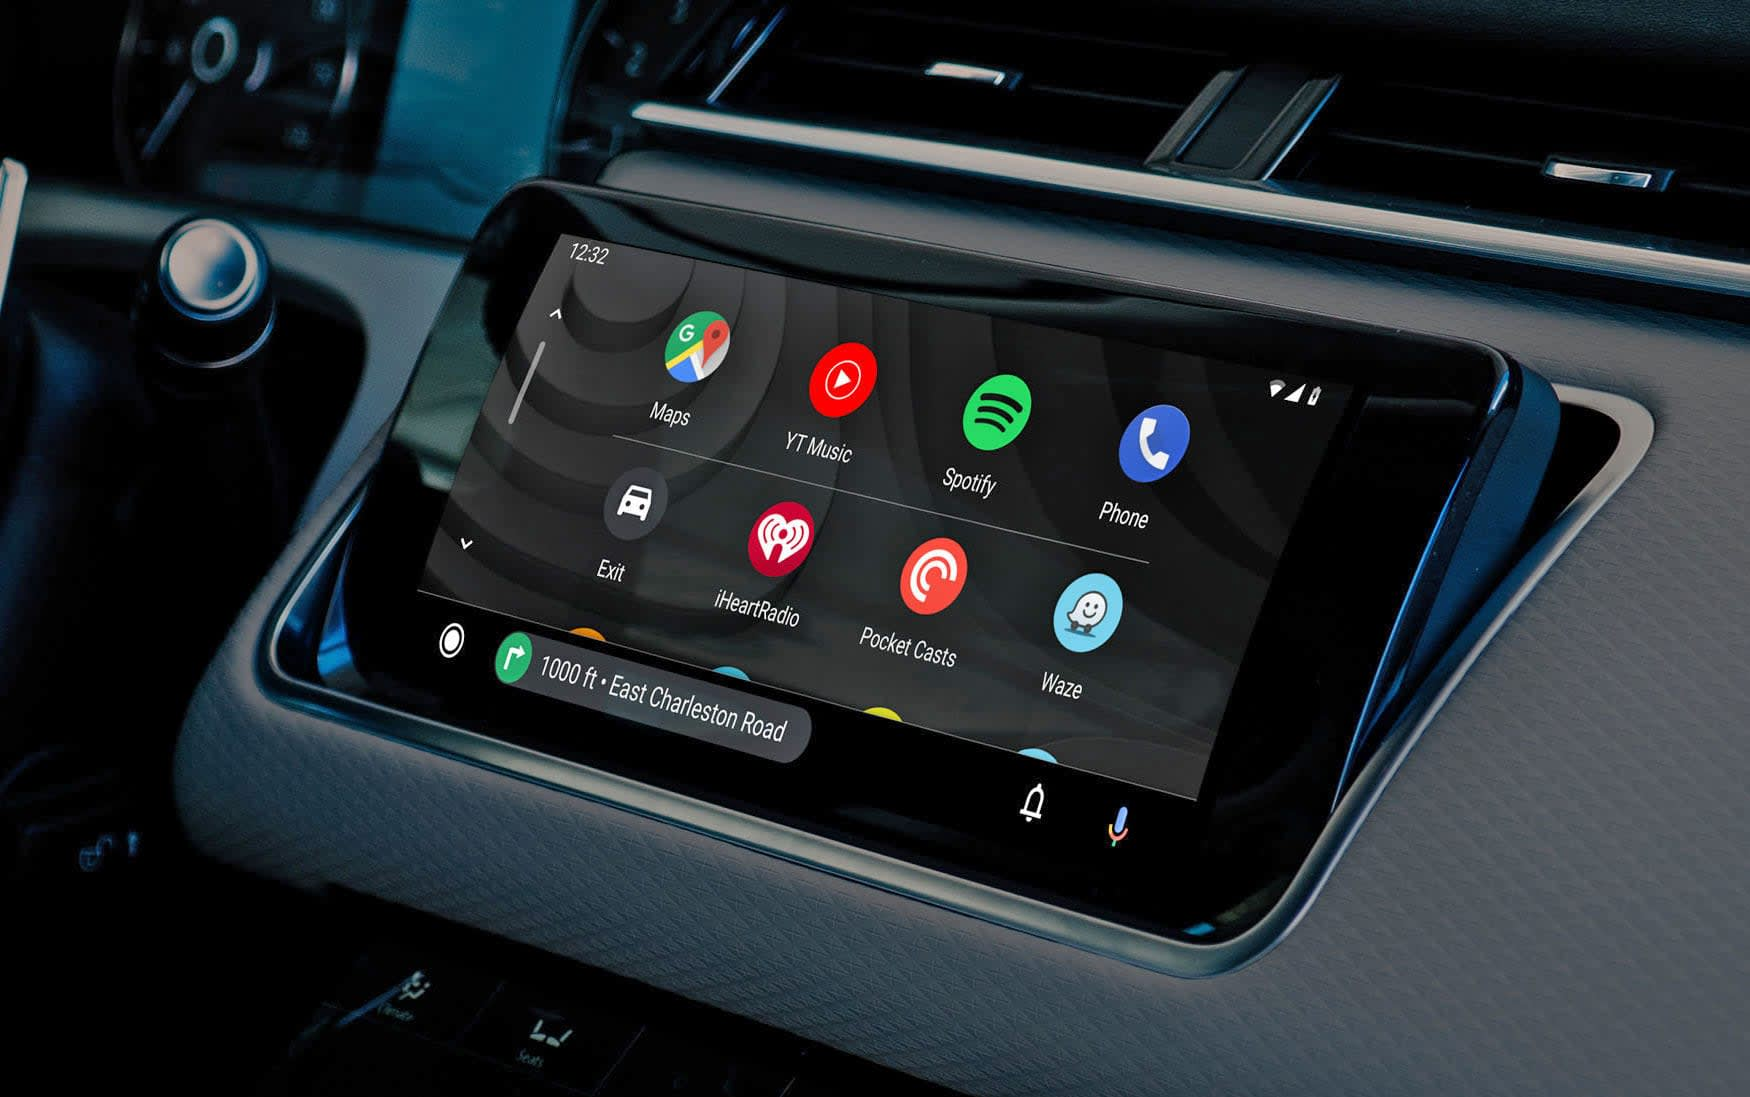 Google S Android Auto Update Makes Launching And Using Apps Safer